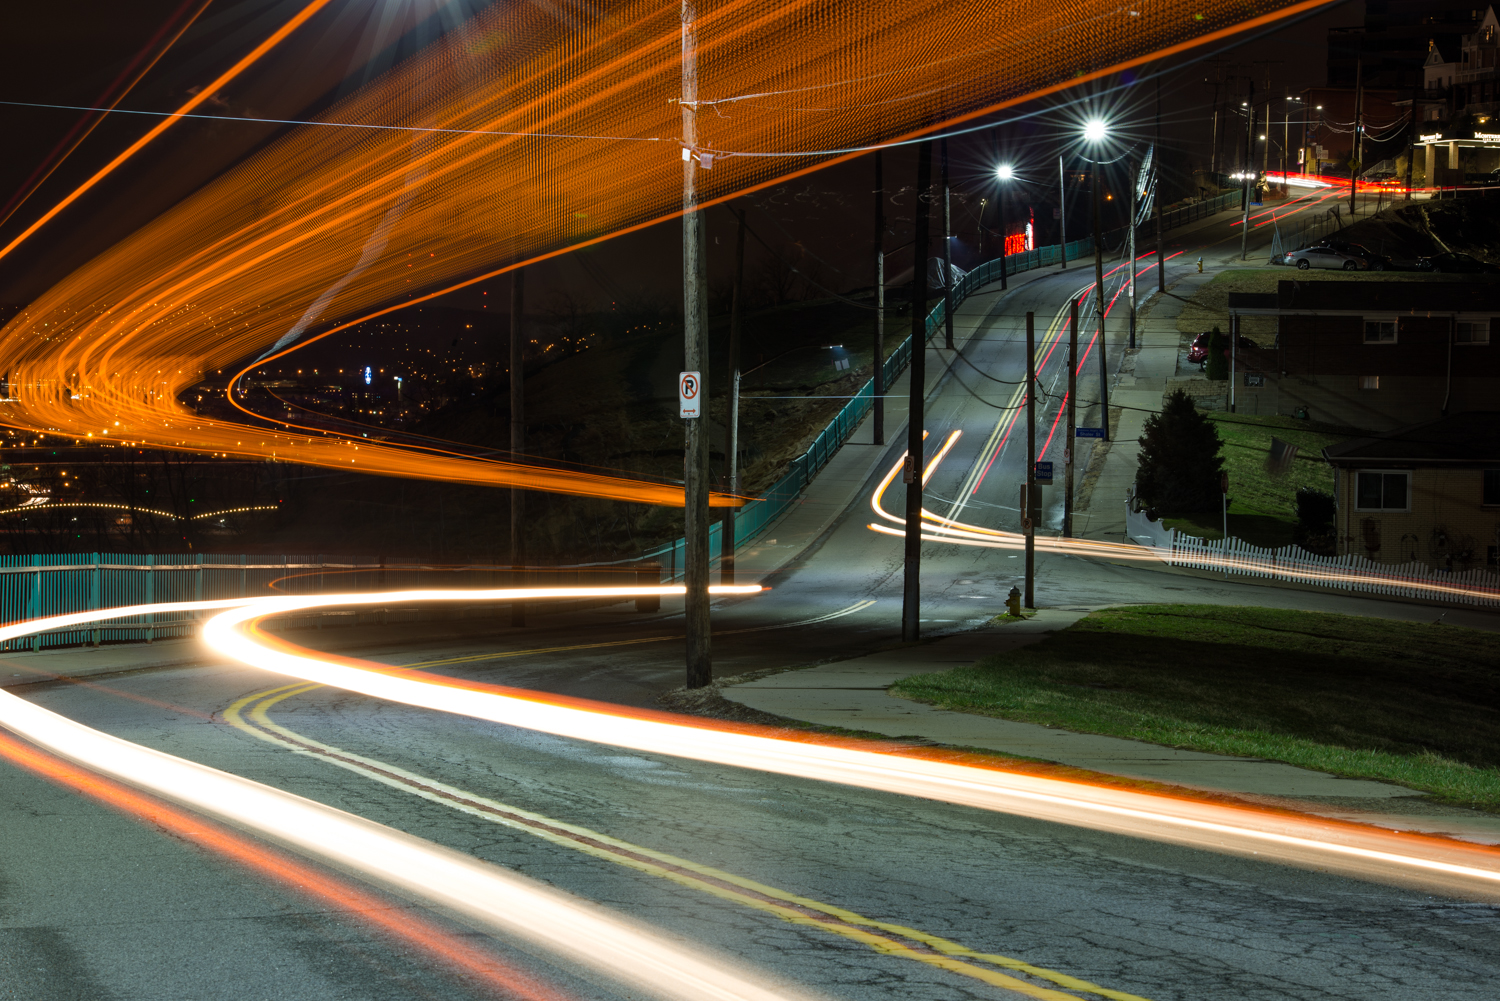 These strange light trails were the result of a double decker bus passing by!